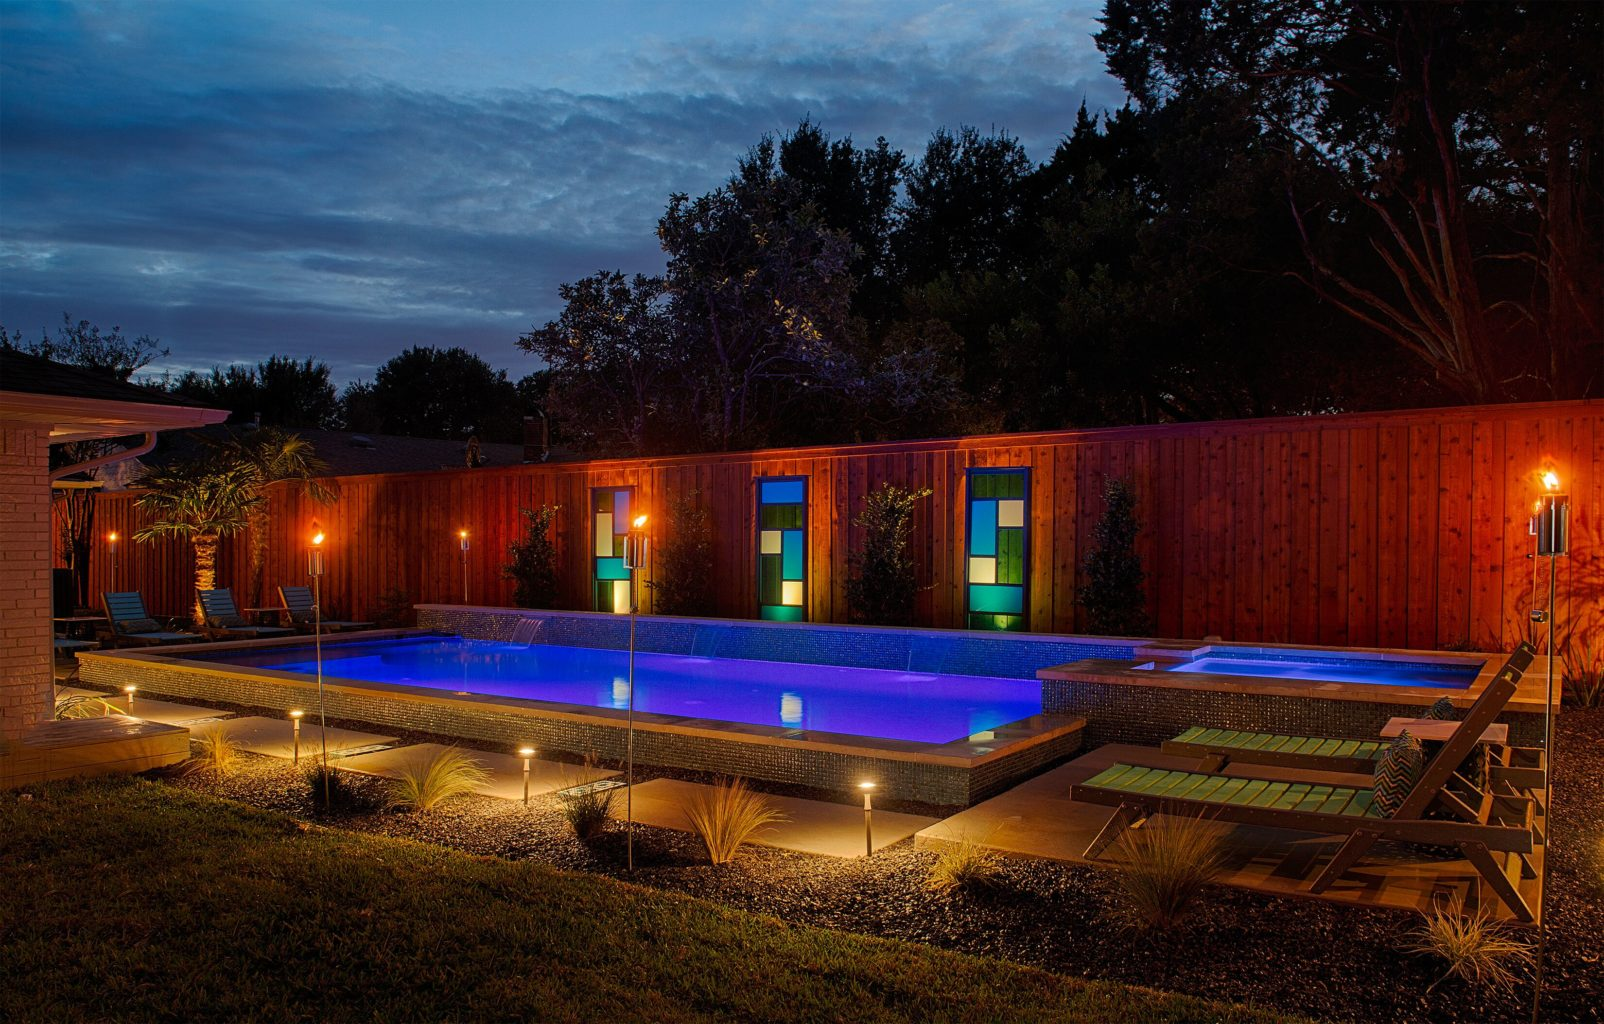 This is an image of the completed St. Albans project. This image is taken at night and shows the luminosity of this creative landscaping. We give kudos to our customers for accessorizing this pool with some beautiful glass piers and complimentary outdoor furniture.